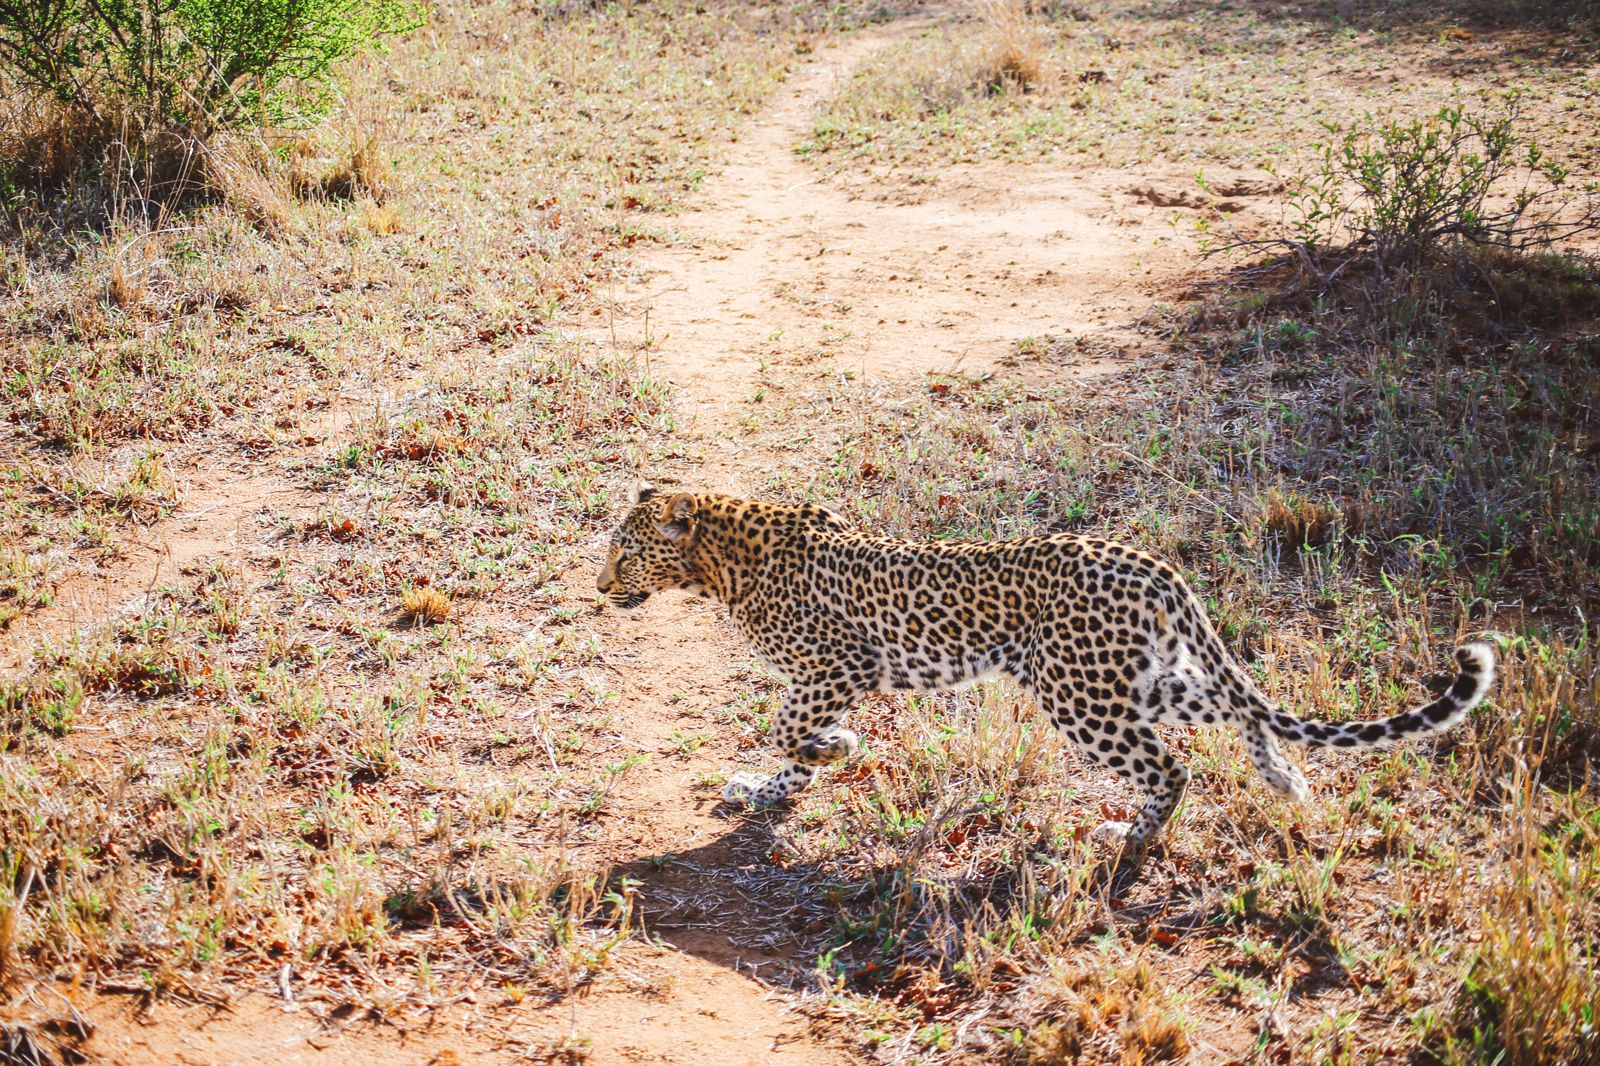 Sunrise Till Sunset - A 24 Hour South African Safari Diary (14)